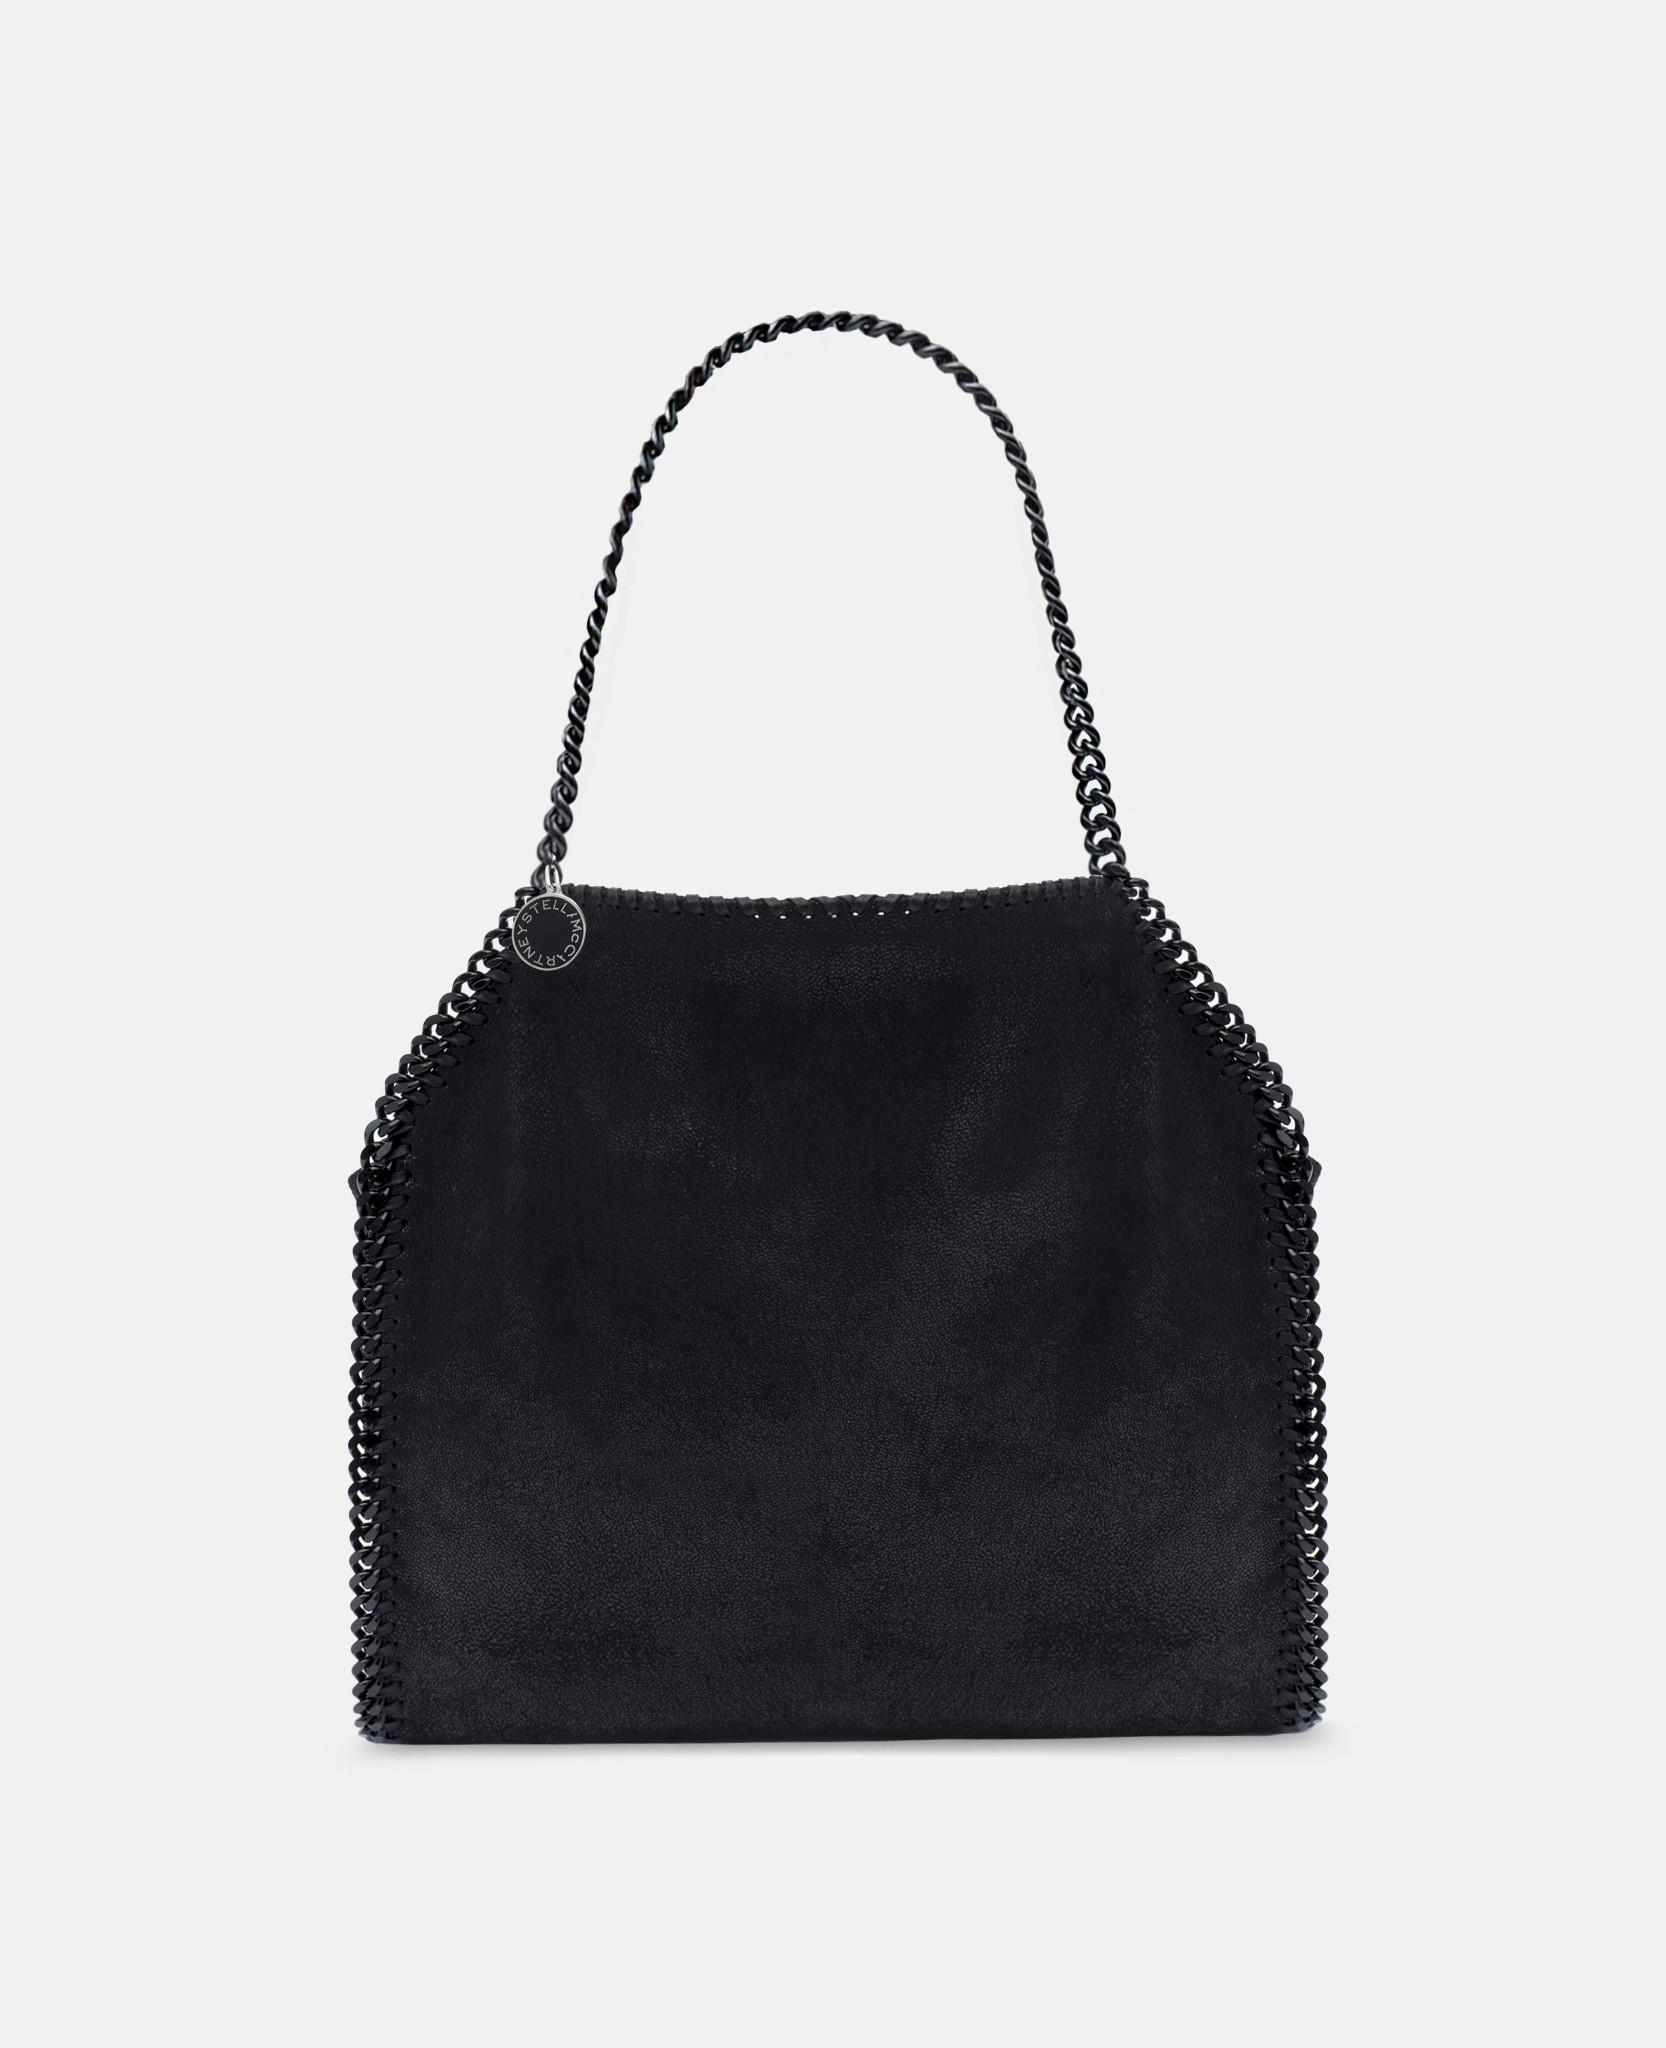 8b673c3fb06f Lyst - Stella McCartney Falabella Tote Bag in Black